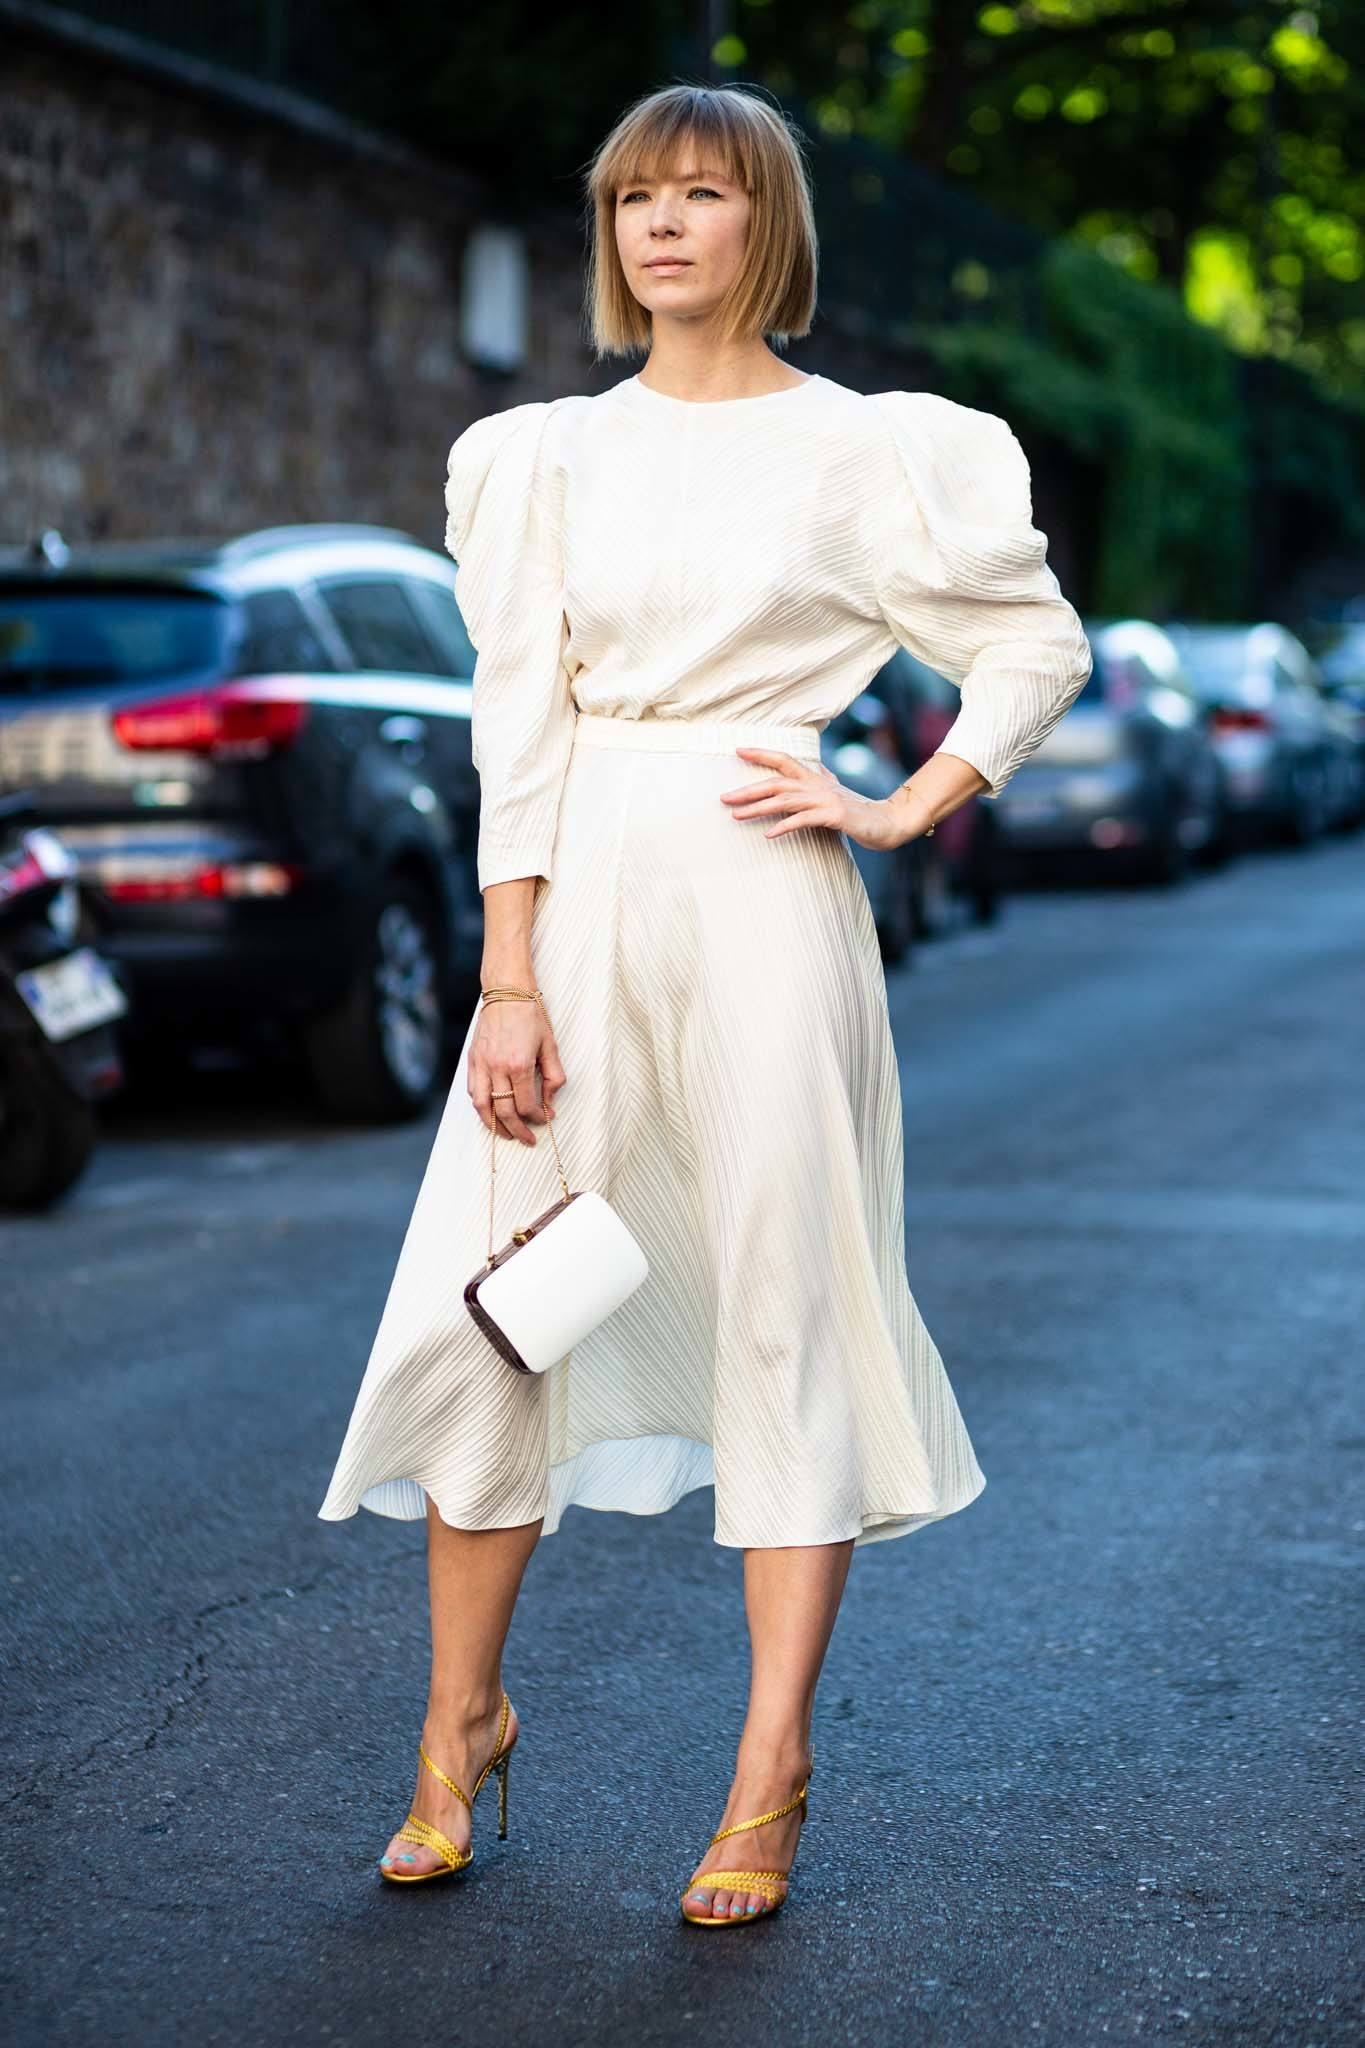 summer chic street style blunt bob with bangs